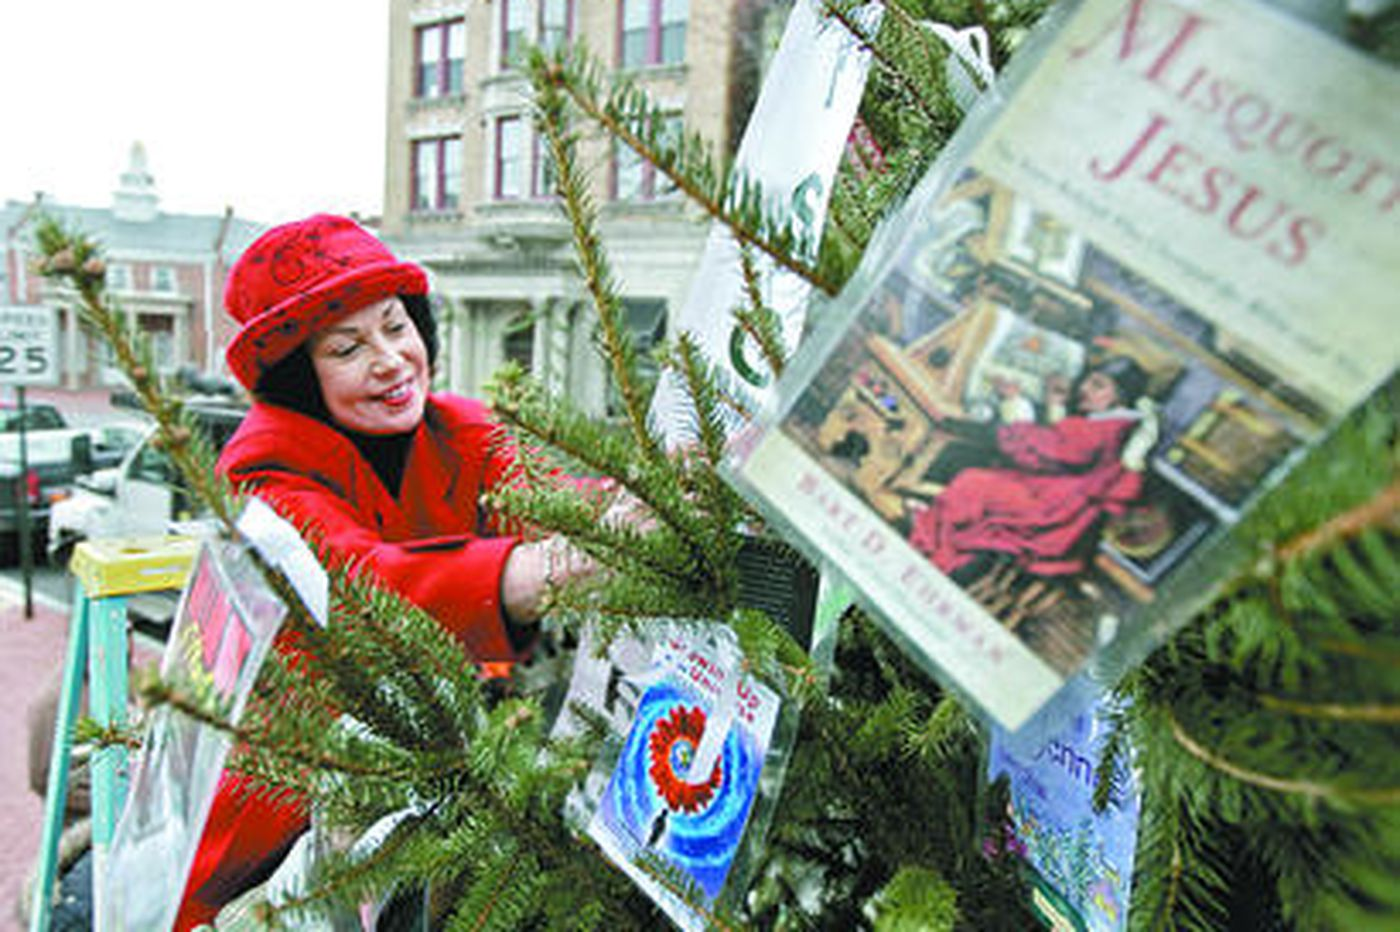 The 'Godless Holiday Tree' goes up